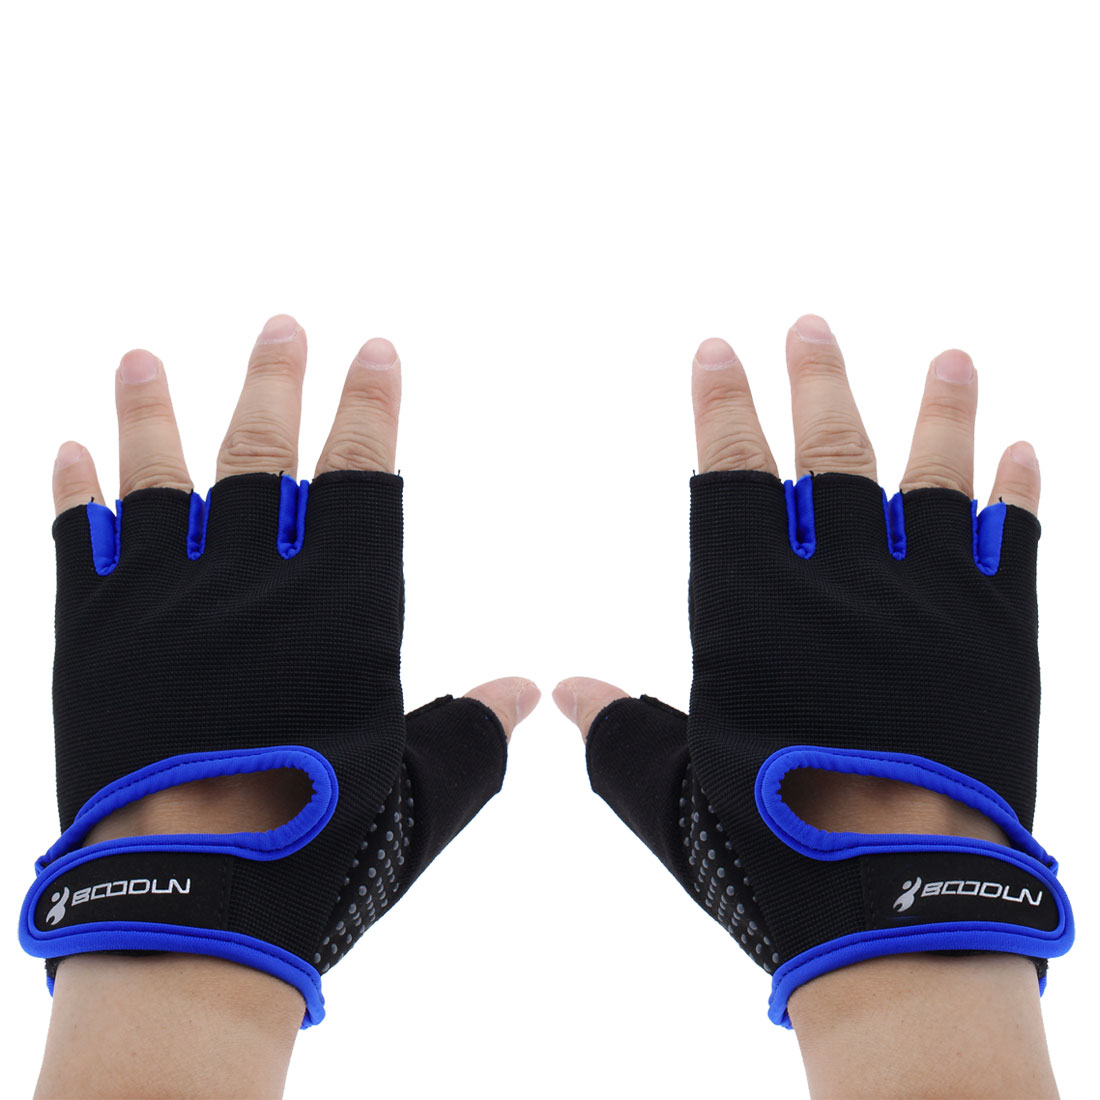 BOODUN Authorized Exercise Weight Biking Lifting Training Microfiber Non-slip Fitness Half Finger Gloves Blue M